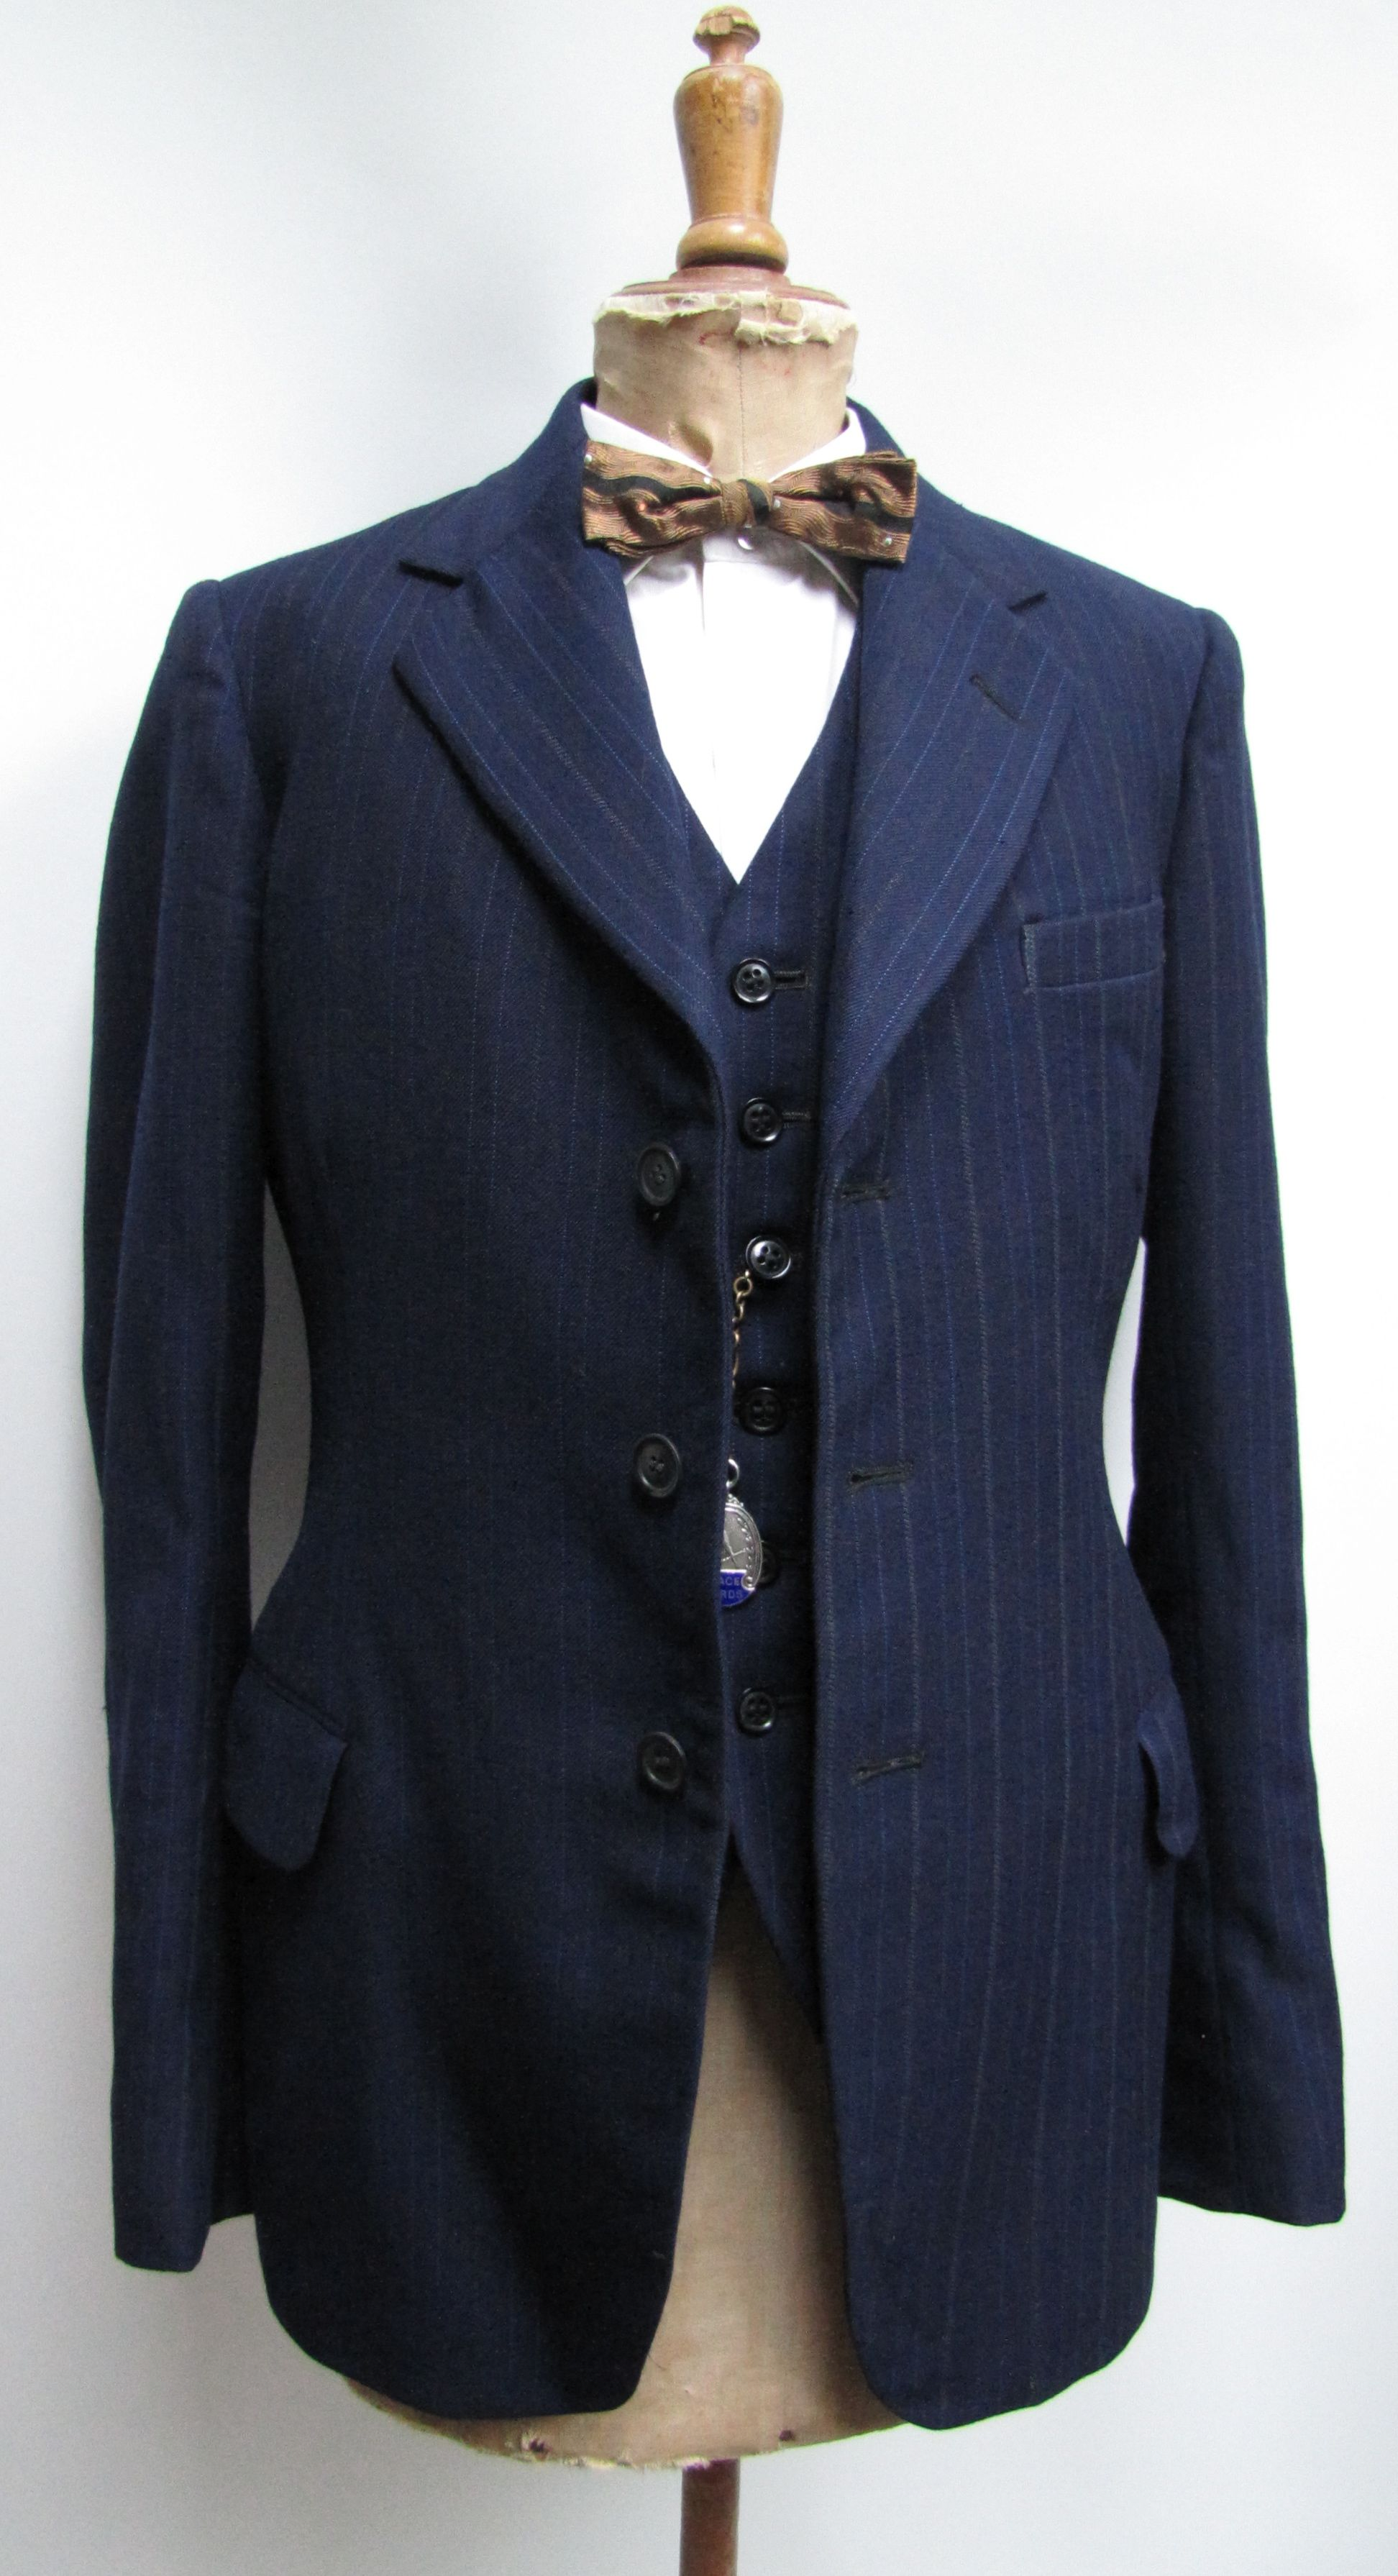 ee3c33f5dab 1940 s 3 piece suit. labelled 1946 demob d serviceman. Stock from  www.froggywentcourting.co.uk